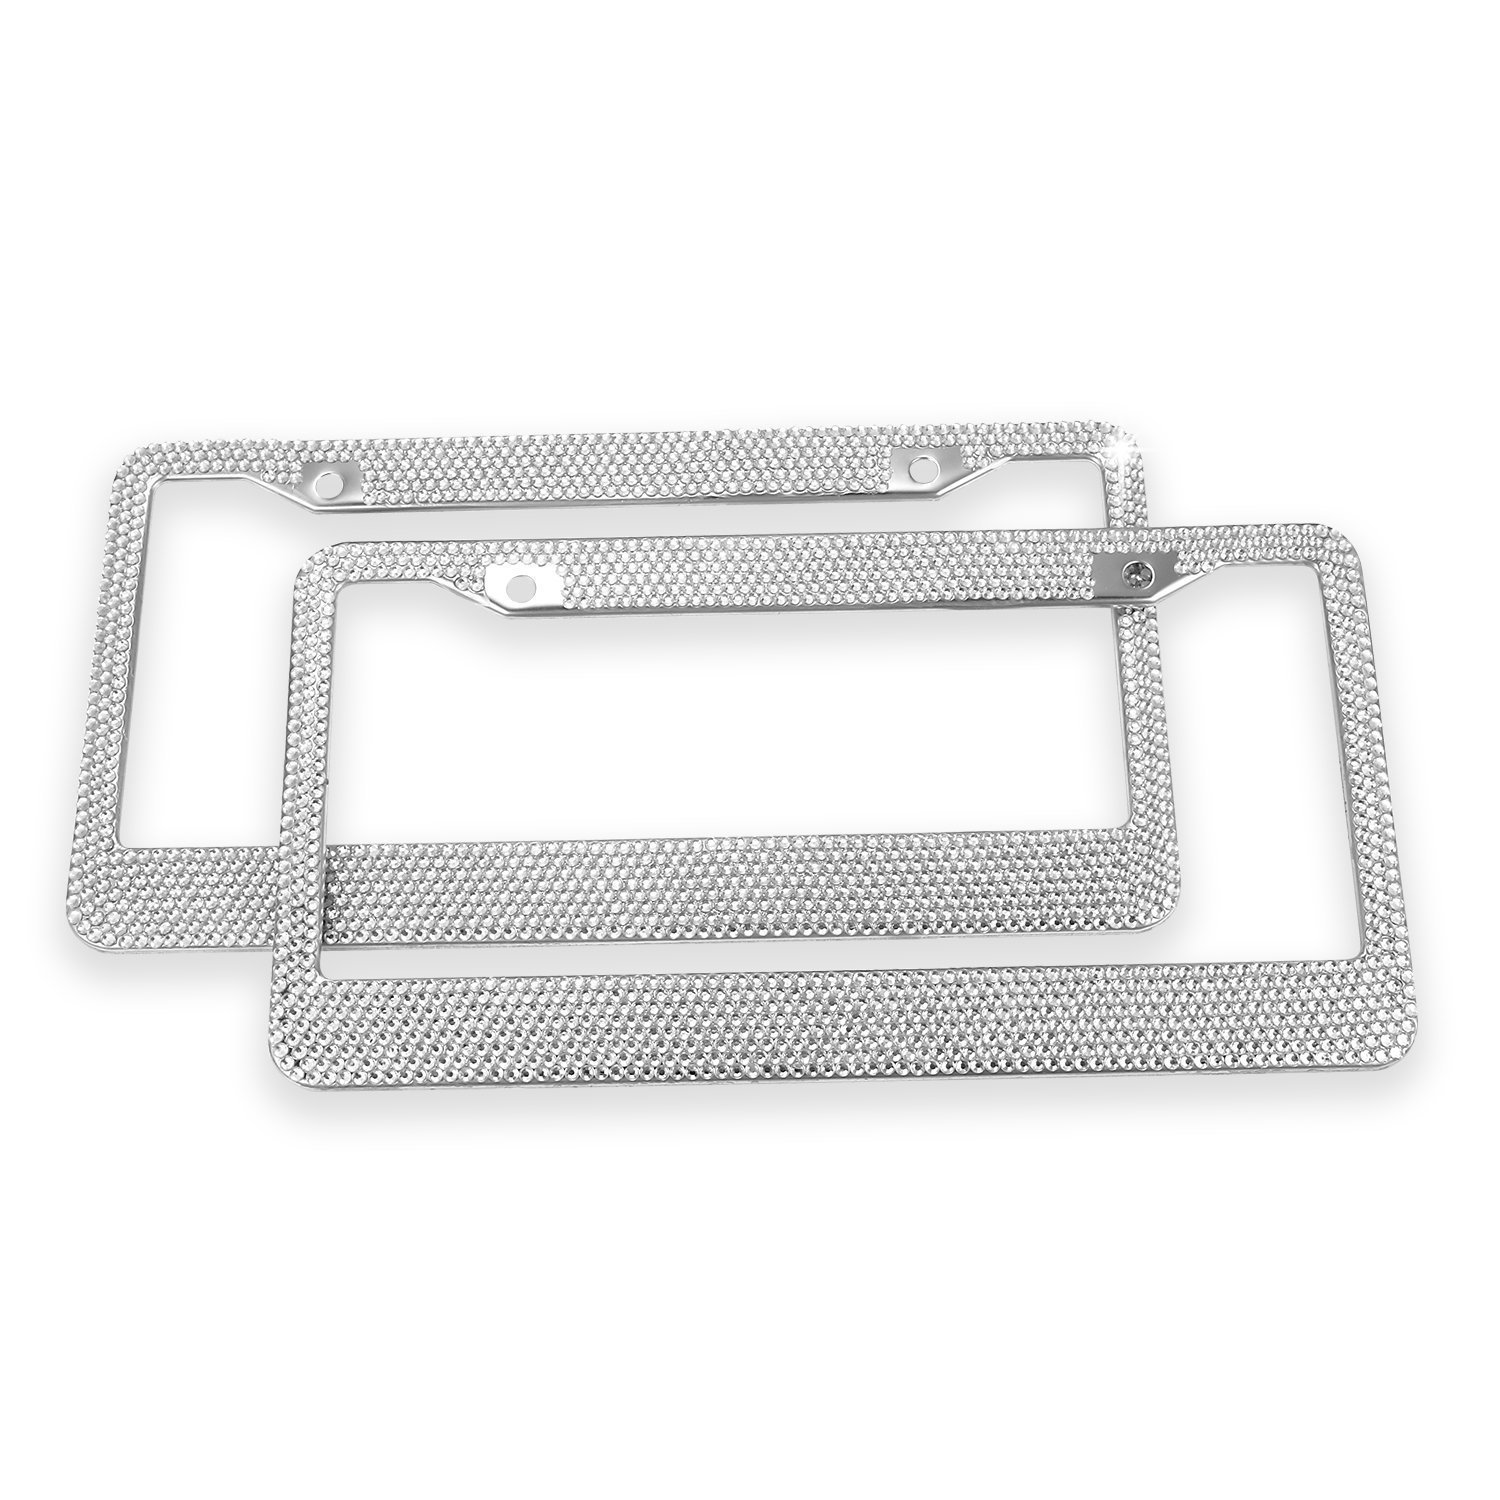 Ohuhu Diamond License Plate Frame, 2 Pack Bling Rhinestone Car License Plate Frames Holders with 7 Shiny Crystal Rows, Metal Chrome Auto License Plate Cover with Mounting Screws, Silver